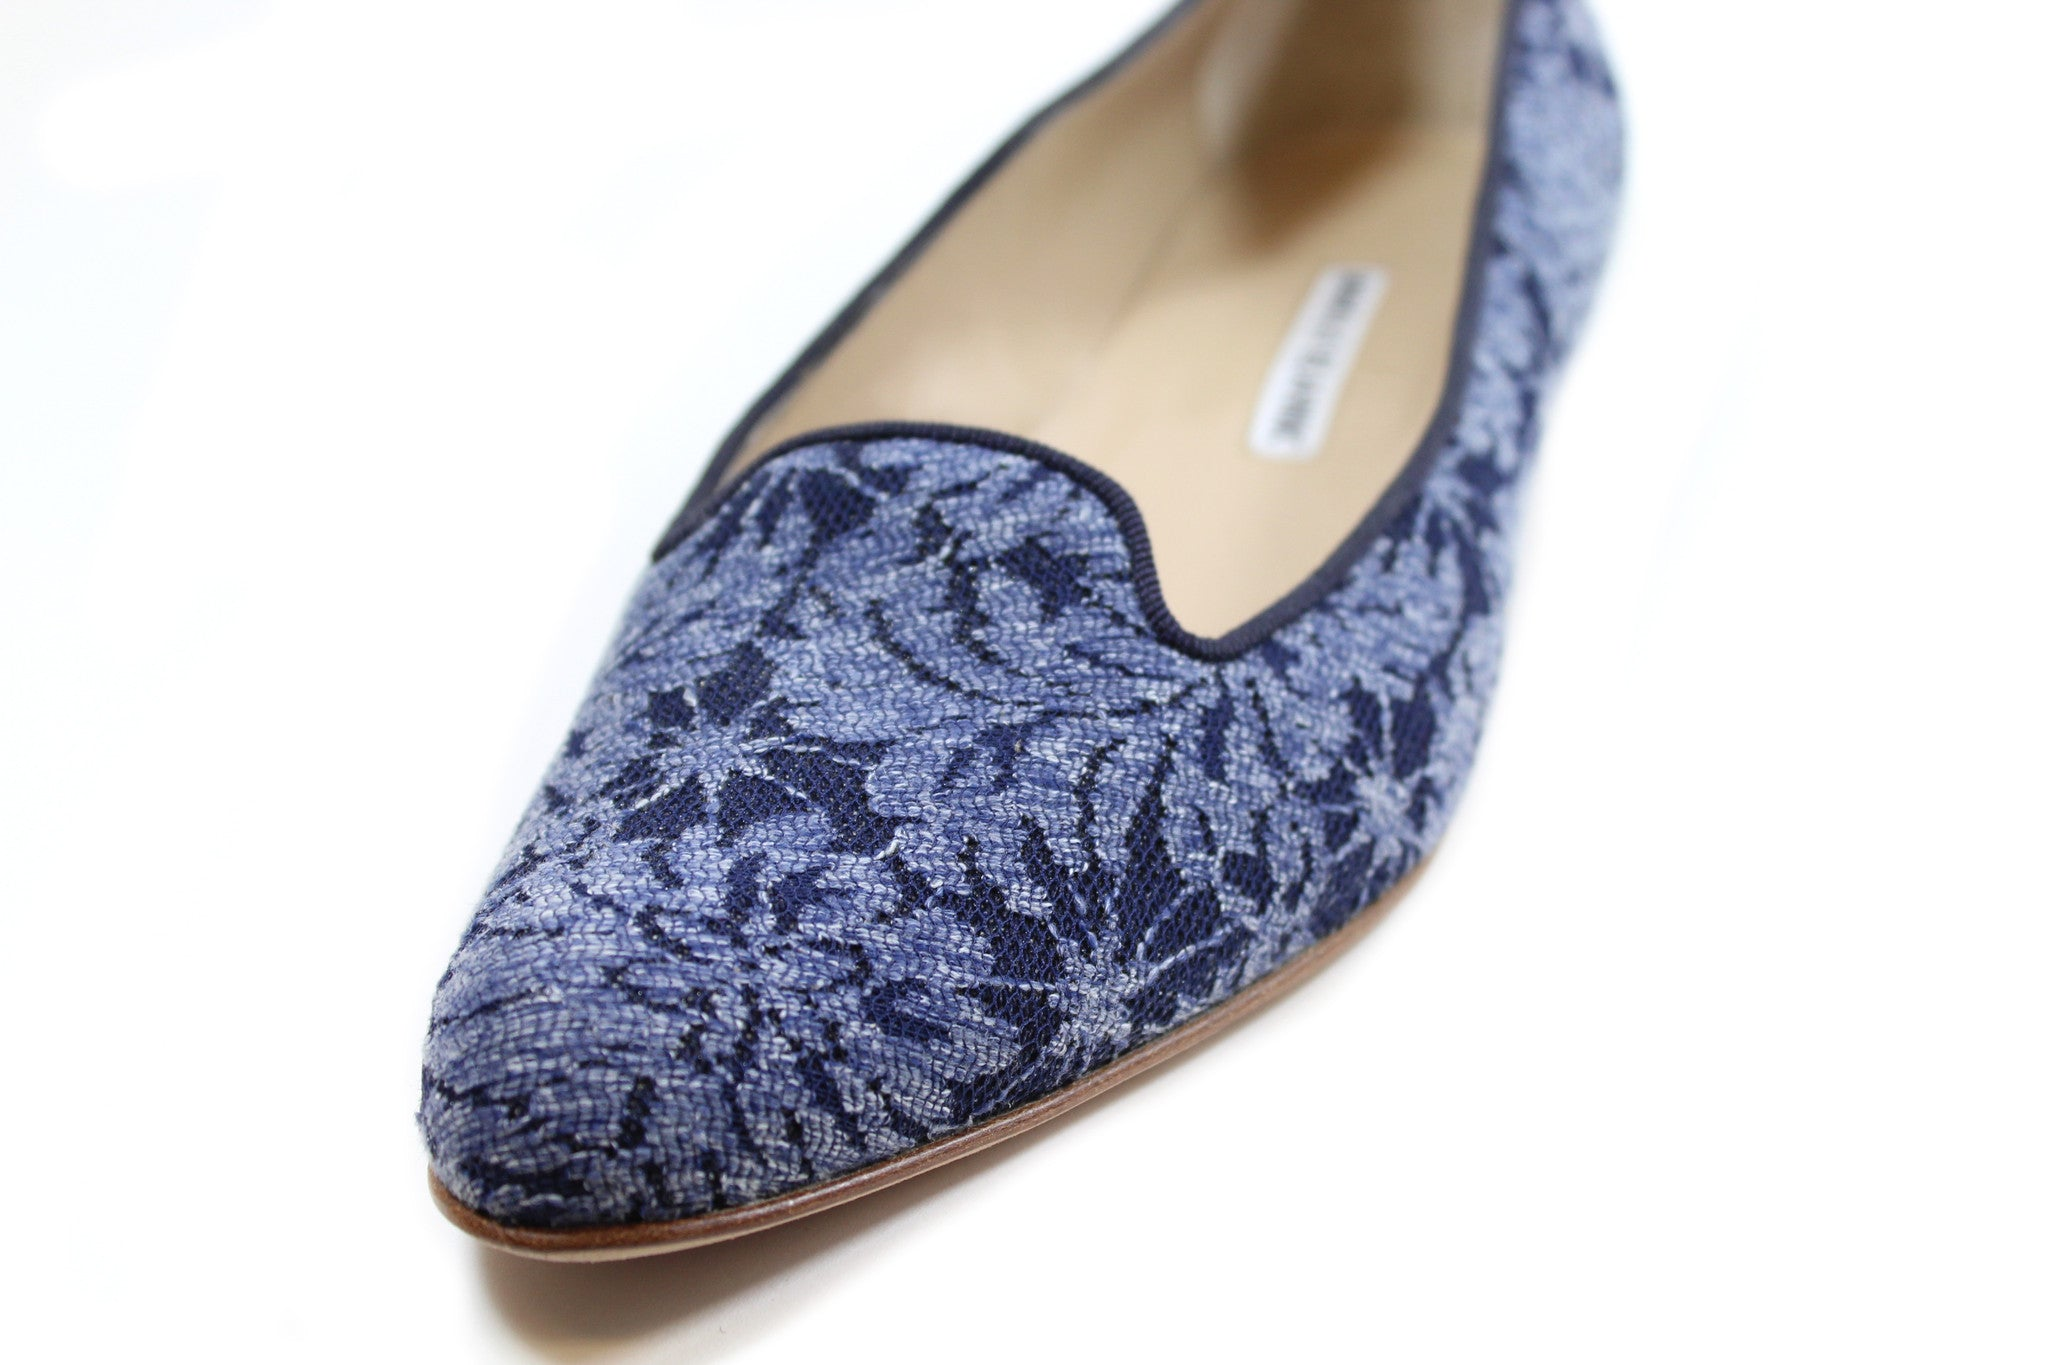 'Sold' Manolo Blahnik Navy Floral Jacquard Loafers (Size 38)